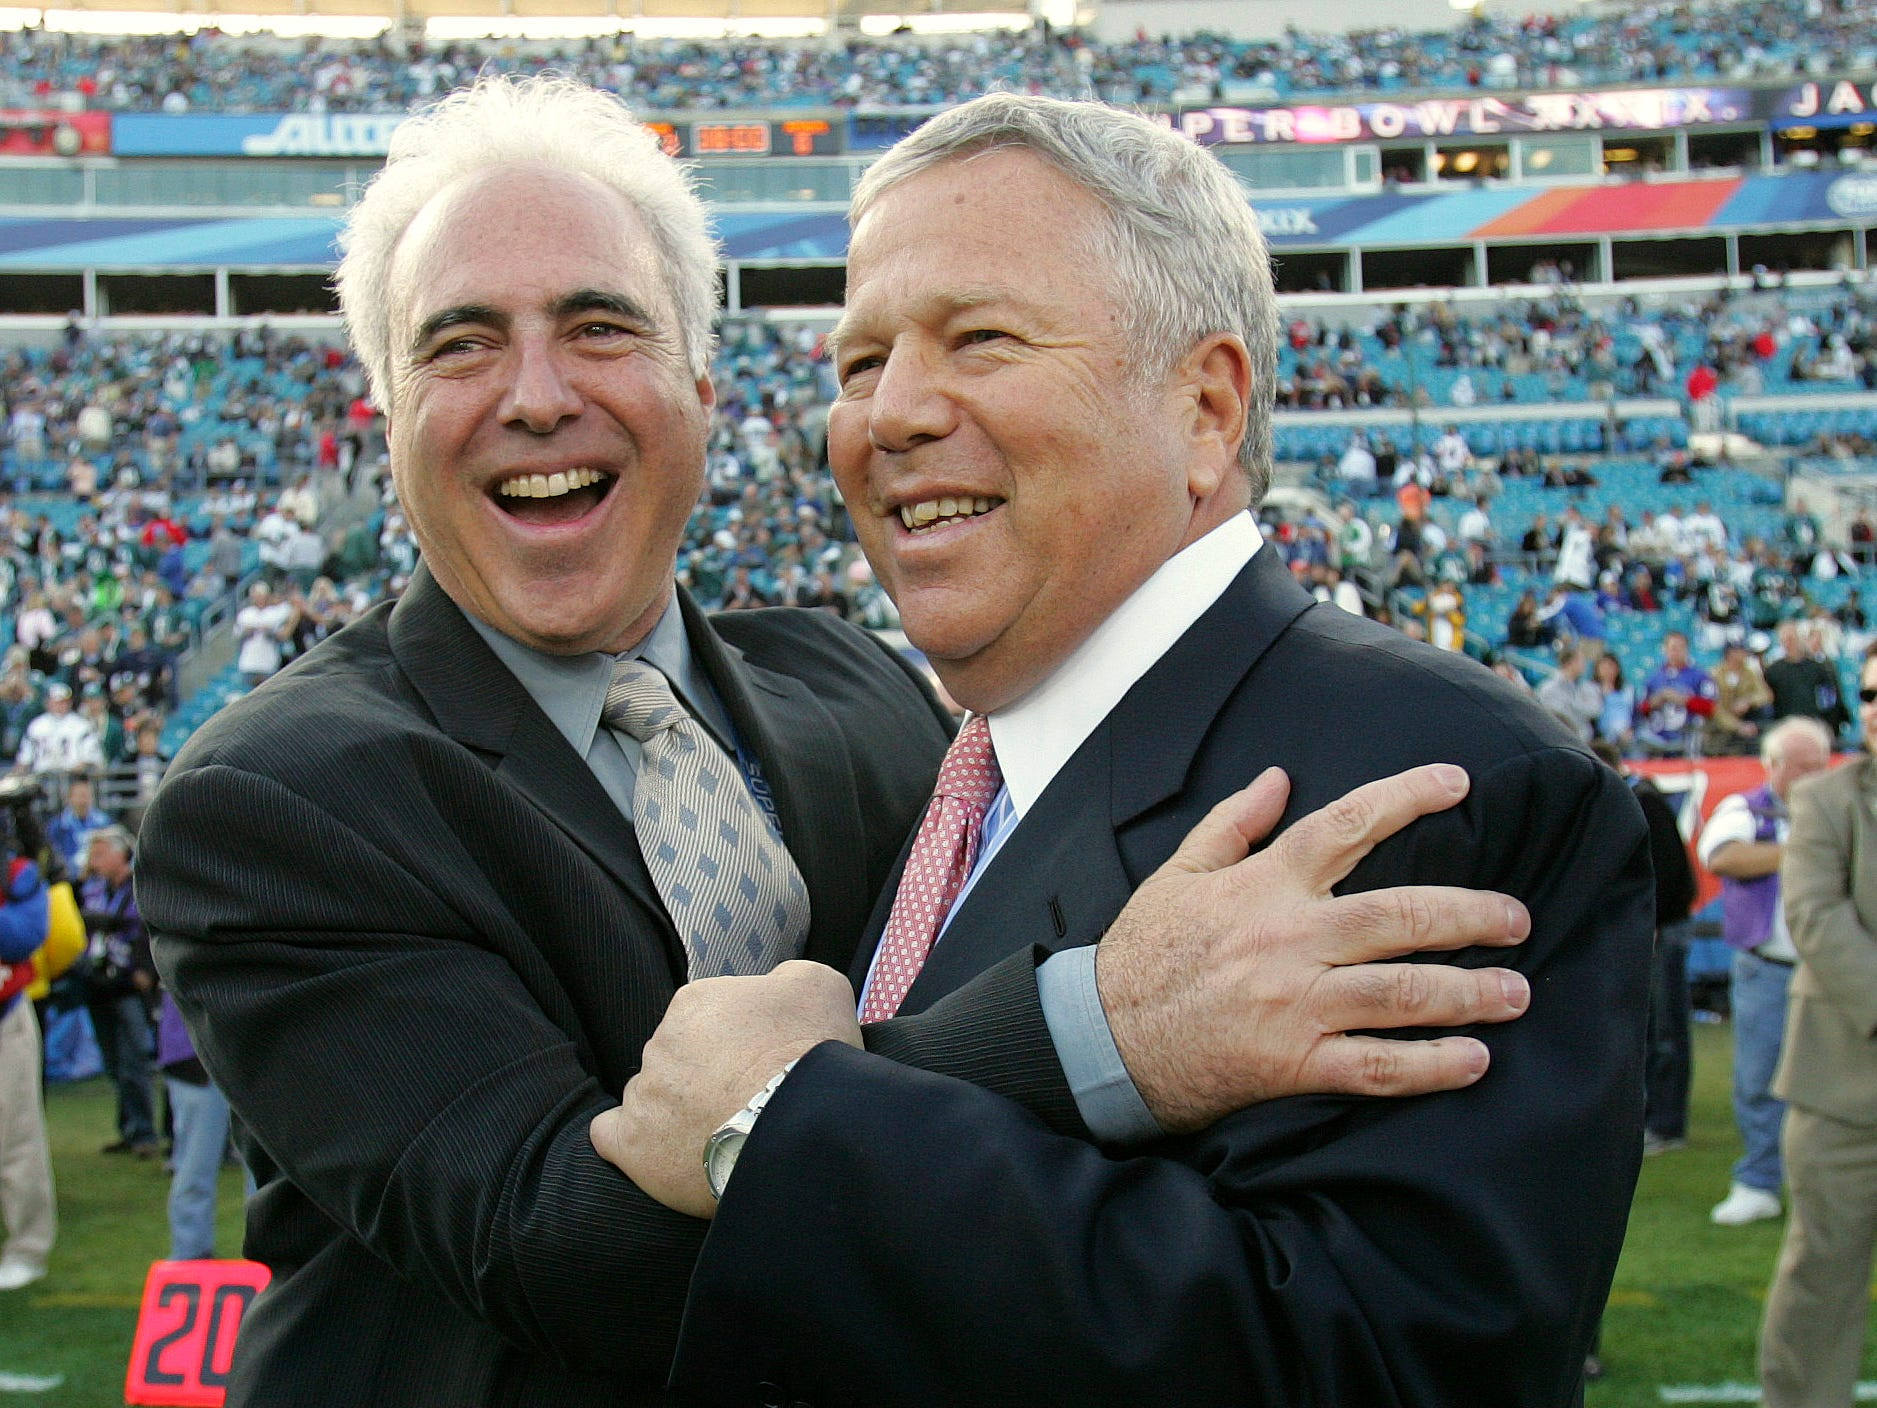 Philadelphia Eagles owner Jeffrey Lurie and Kraft meet on the field during pre-game of Super Bowl XXXIX.